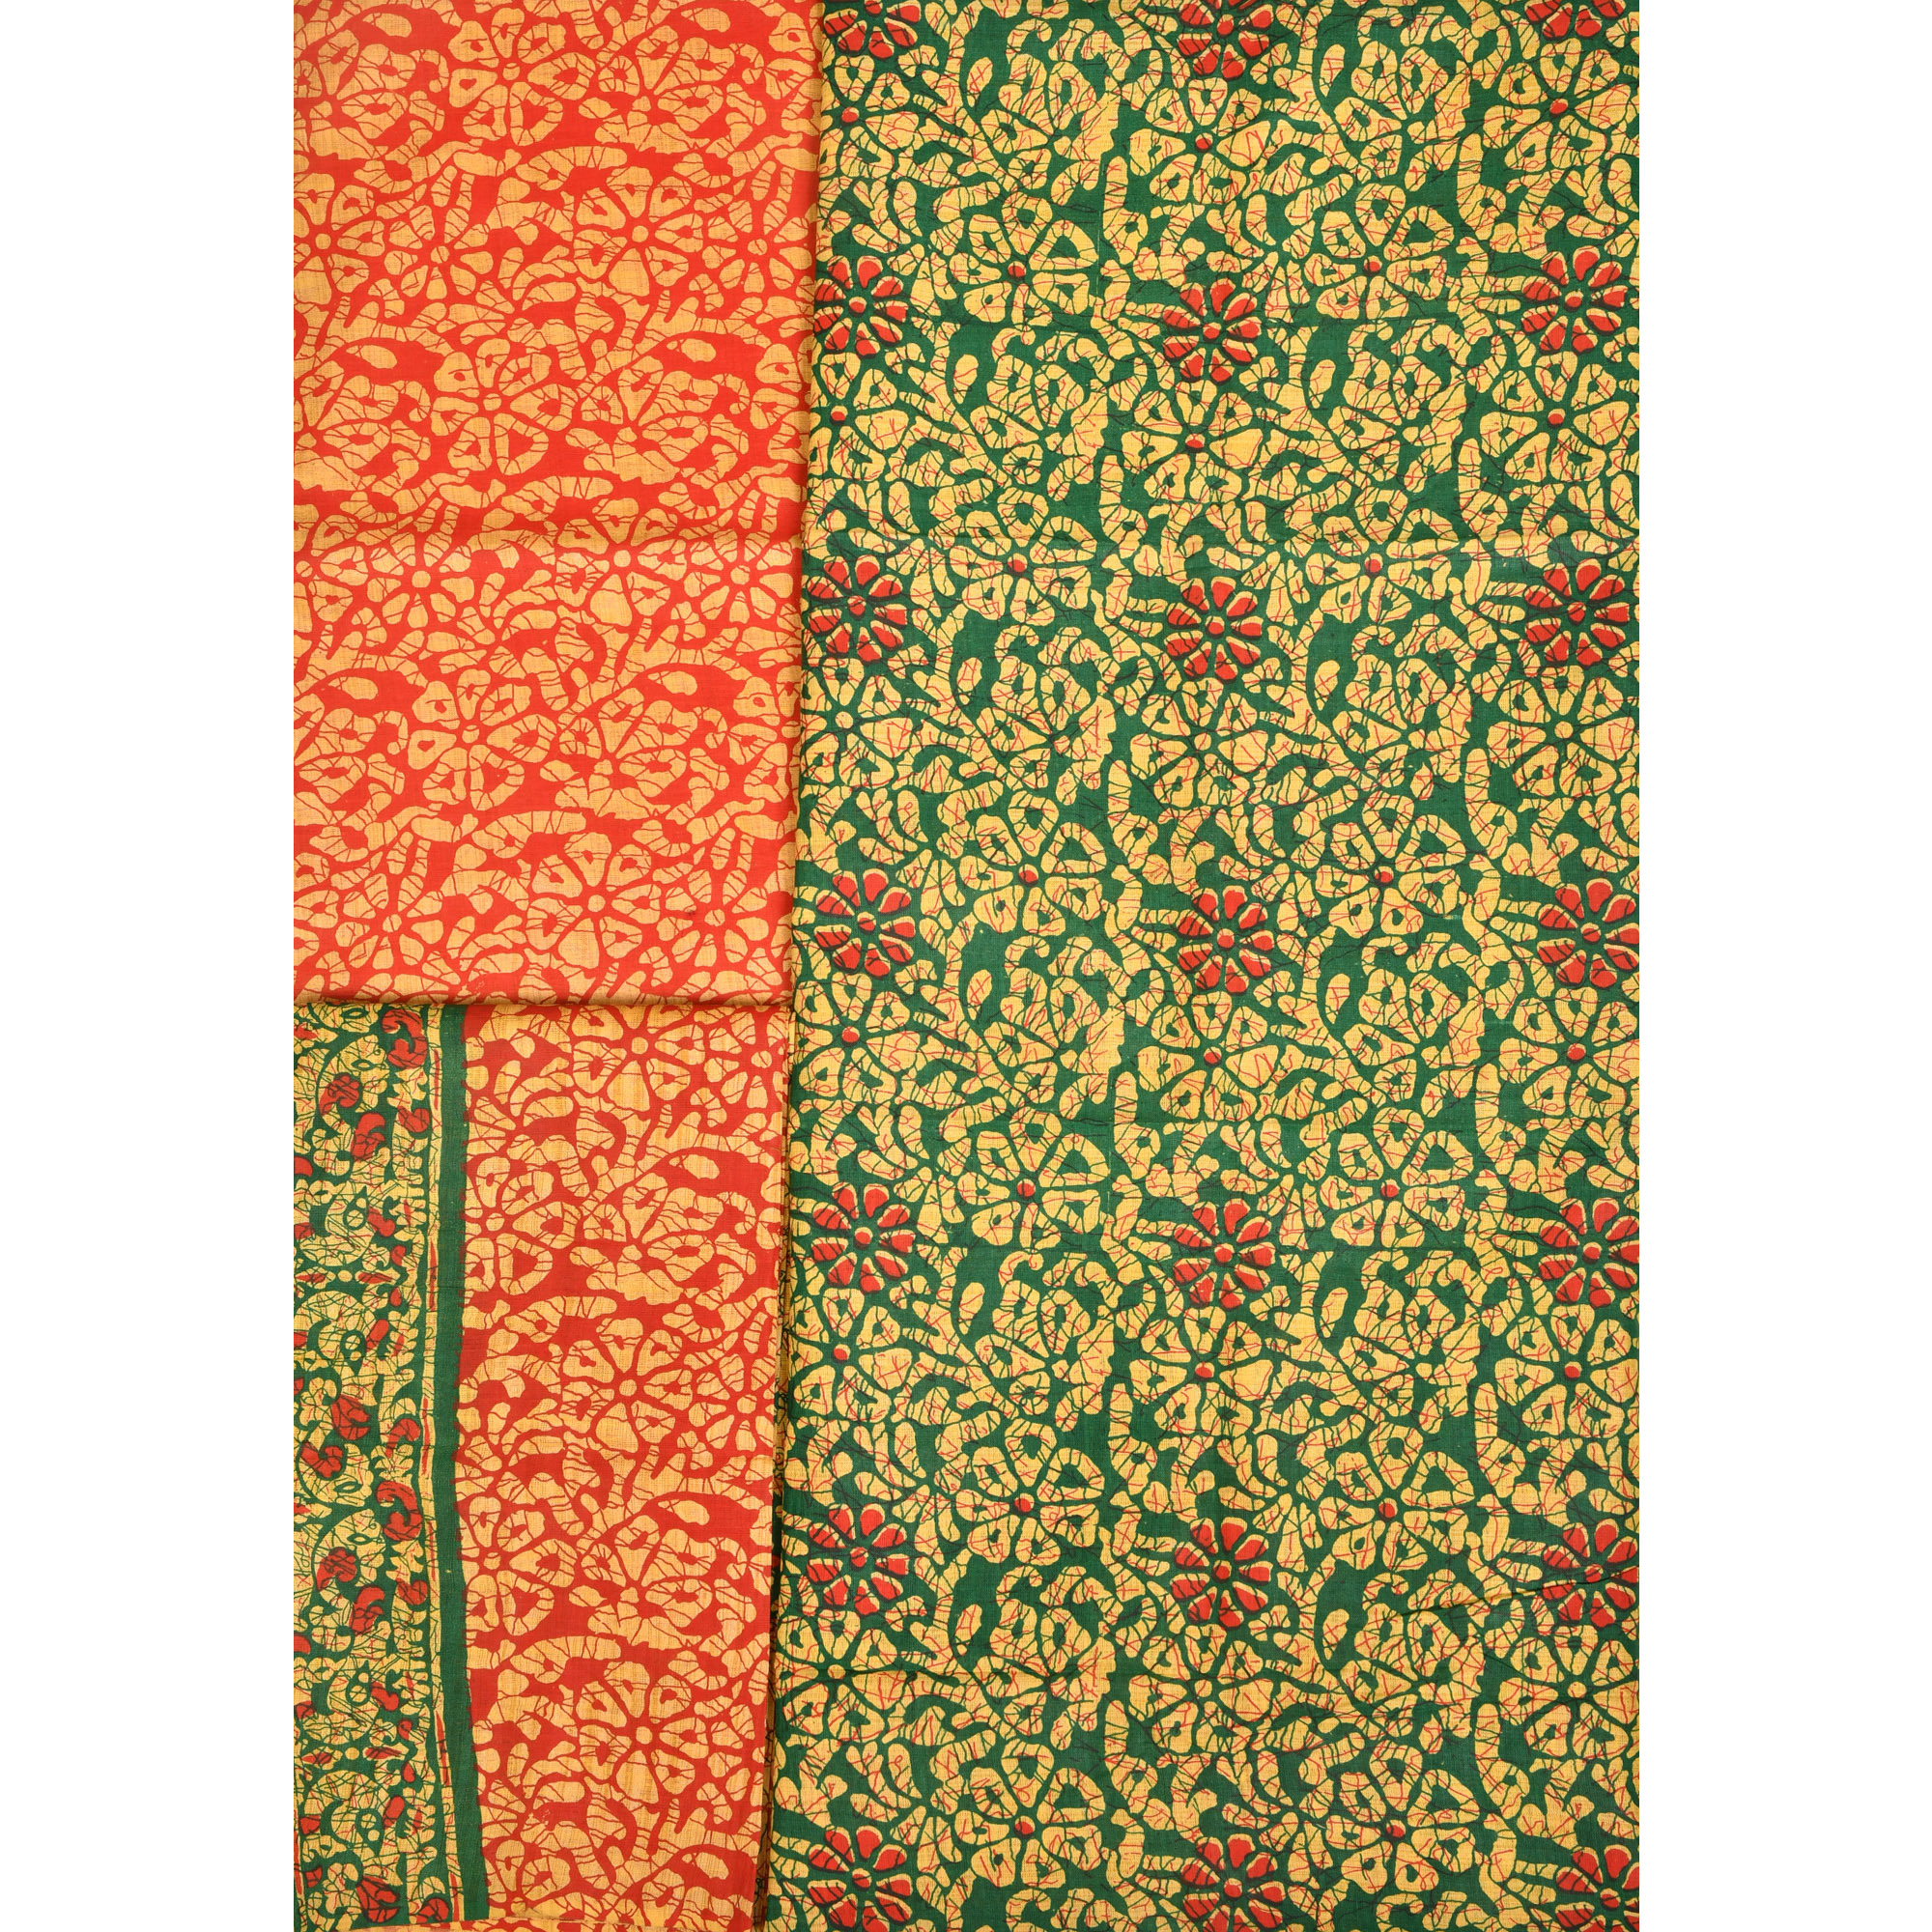 Green and Red Foral-Printed Salwar Kameez Fabric